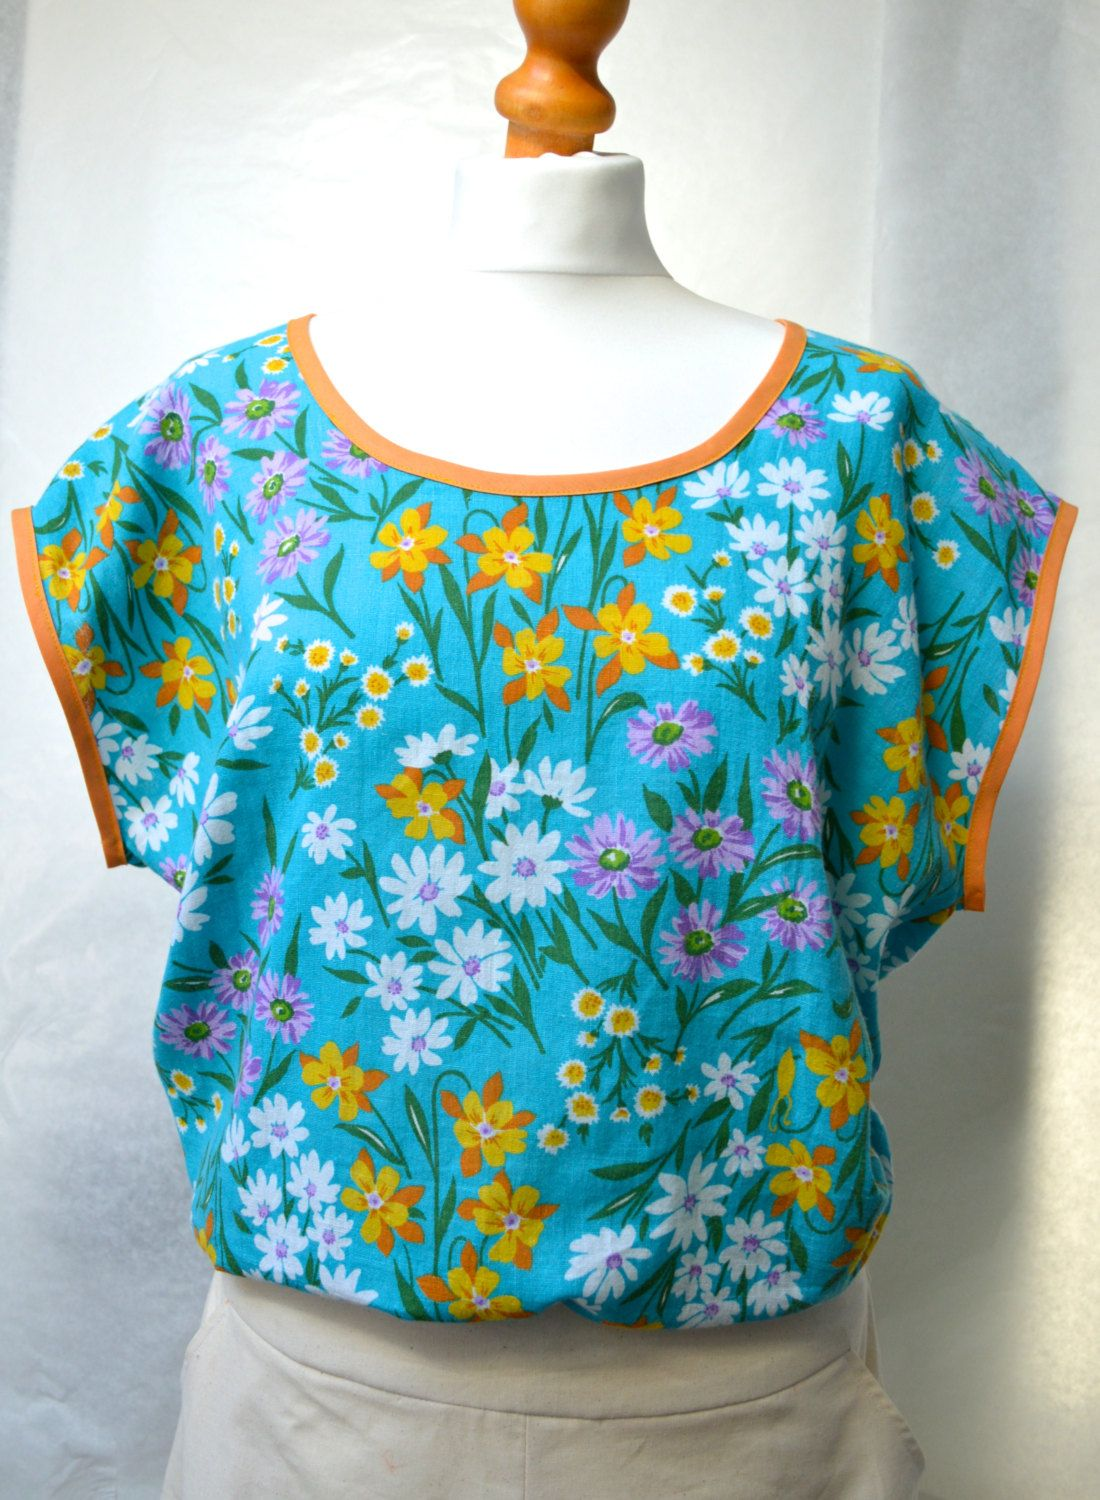 Scoop neck top, vintage fabric, flower print blues, size large by theHouseofchickaDee on Etsy